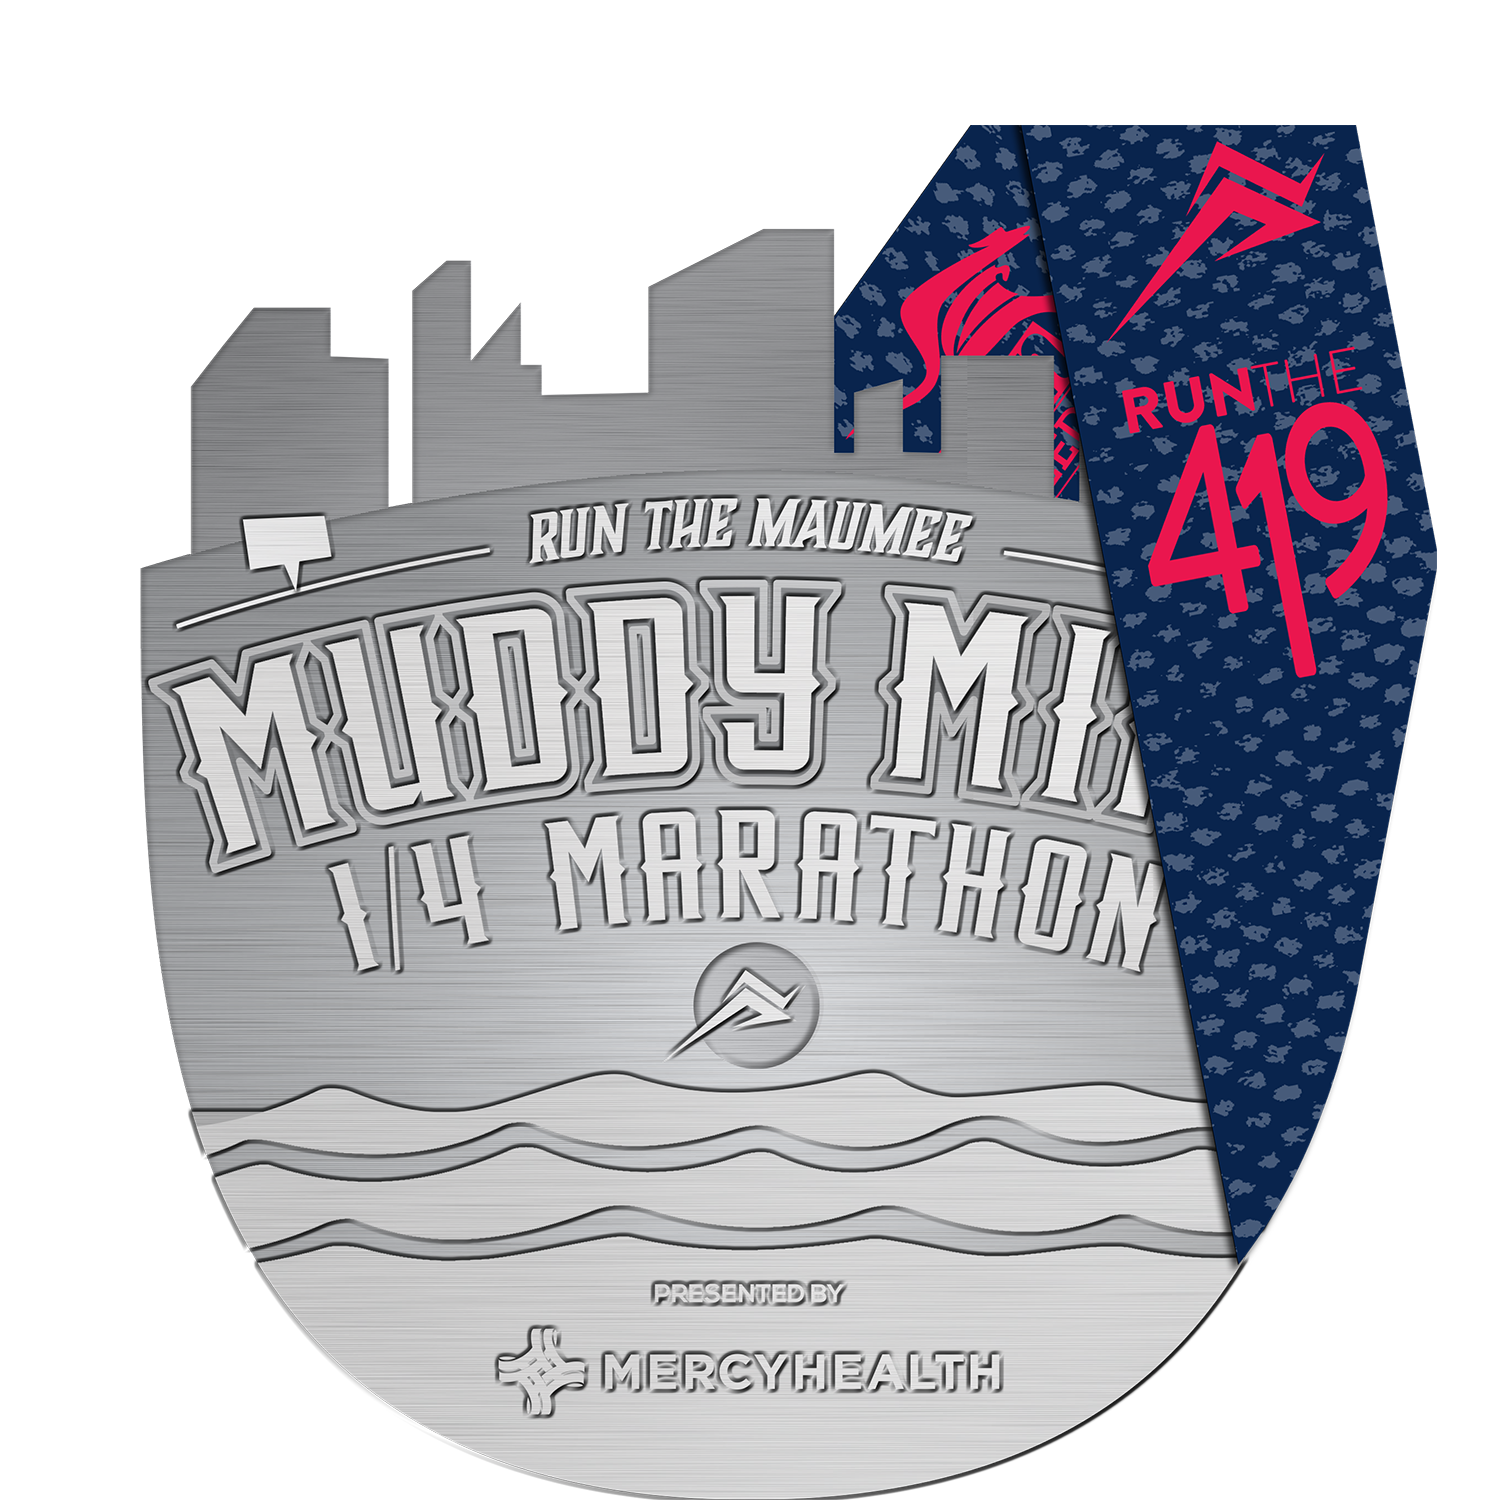 Muddy Mini, presented by Mercy Health